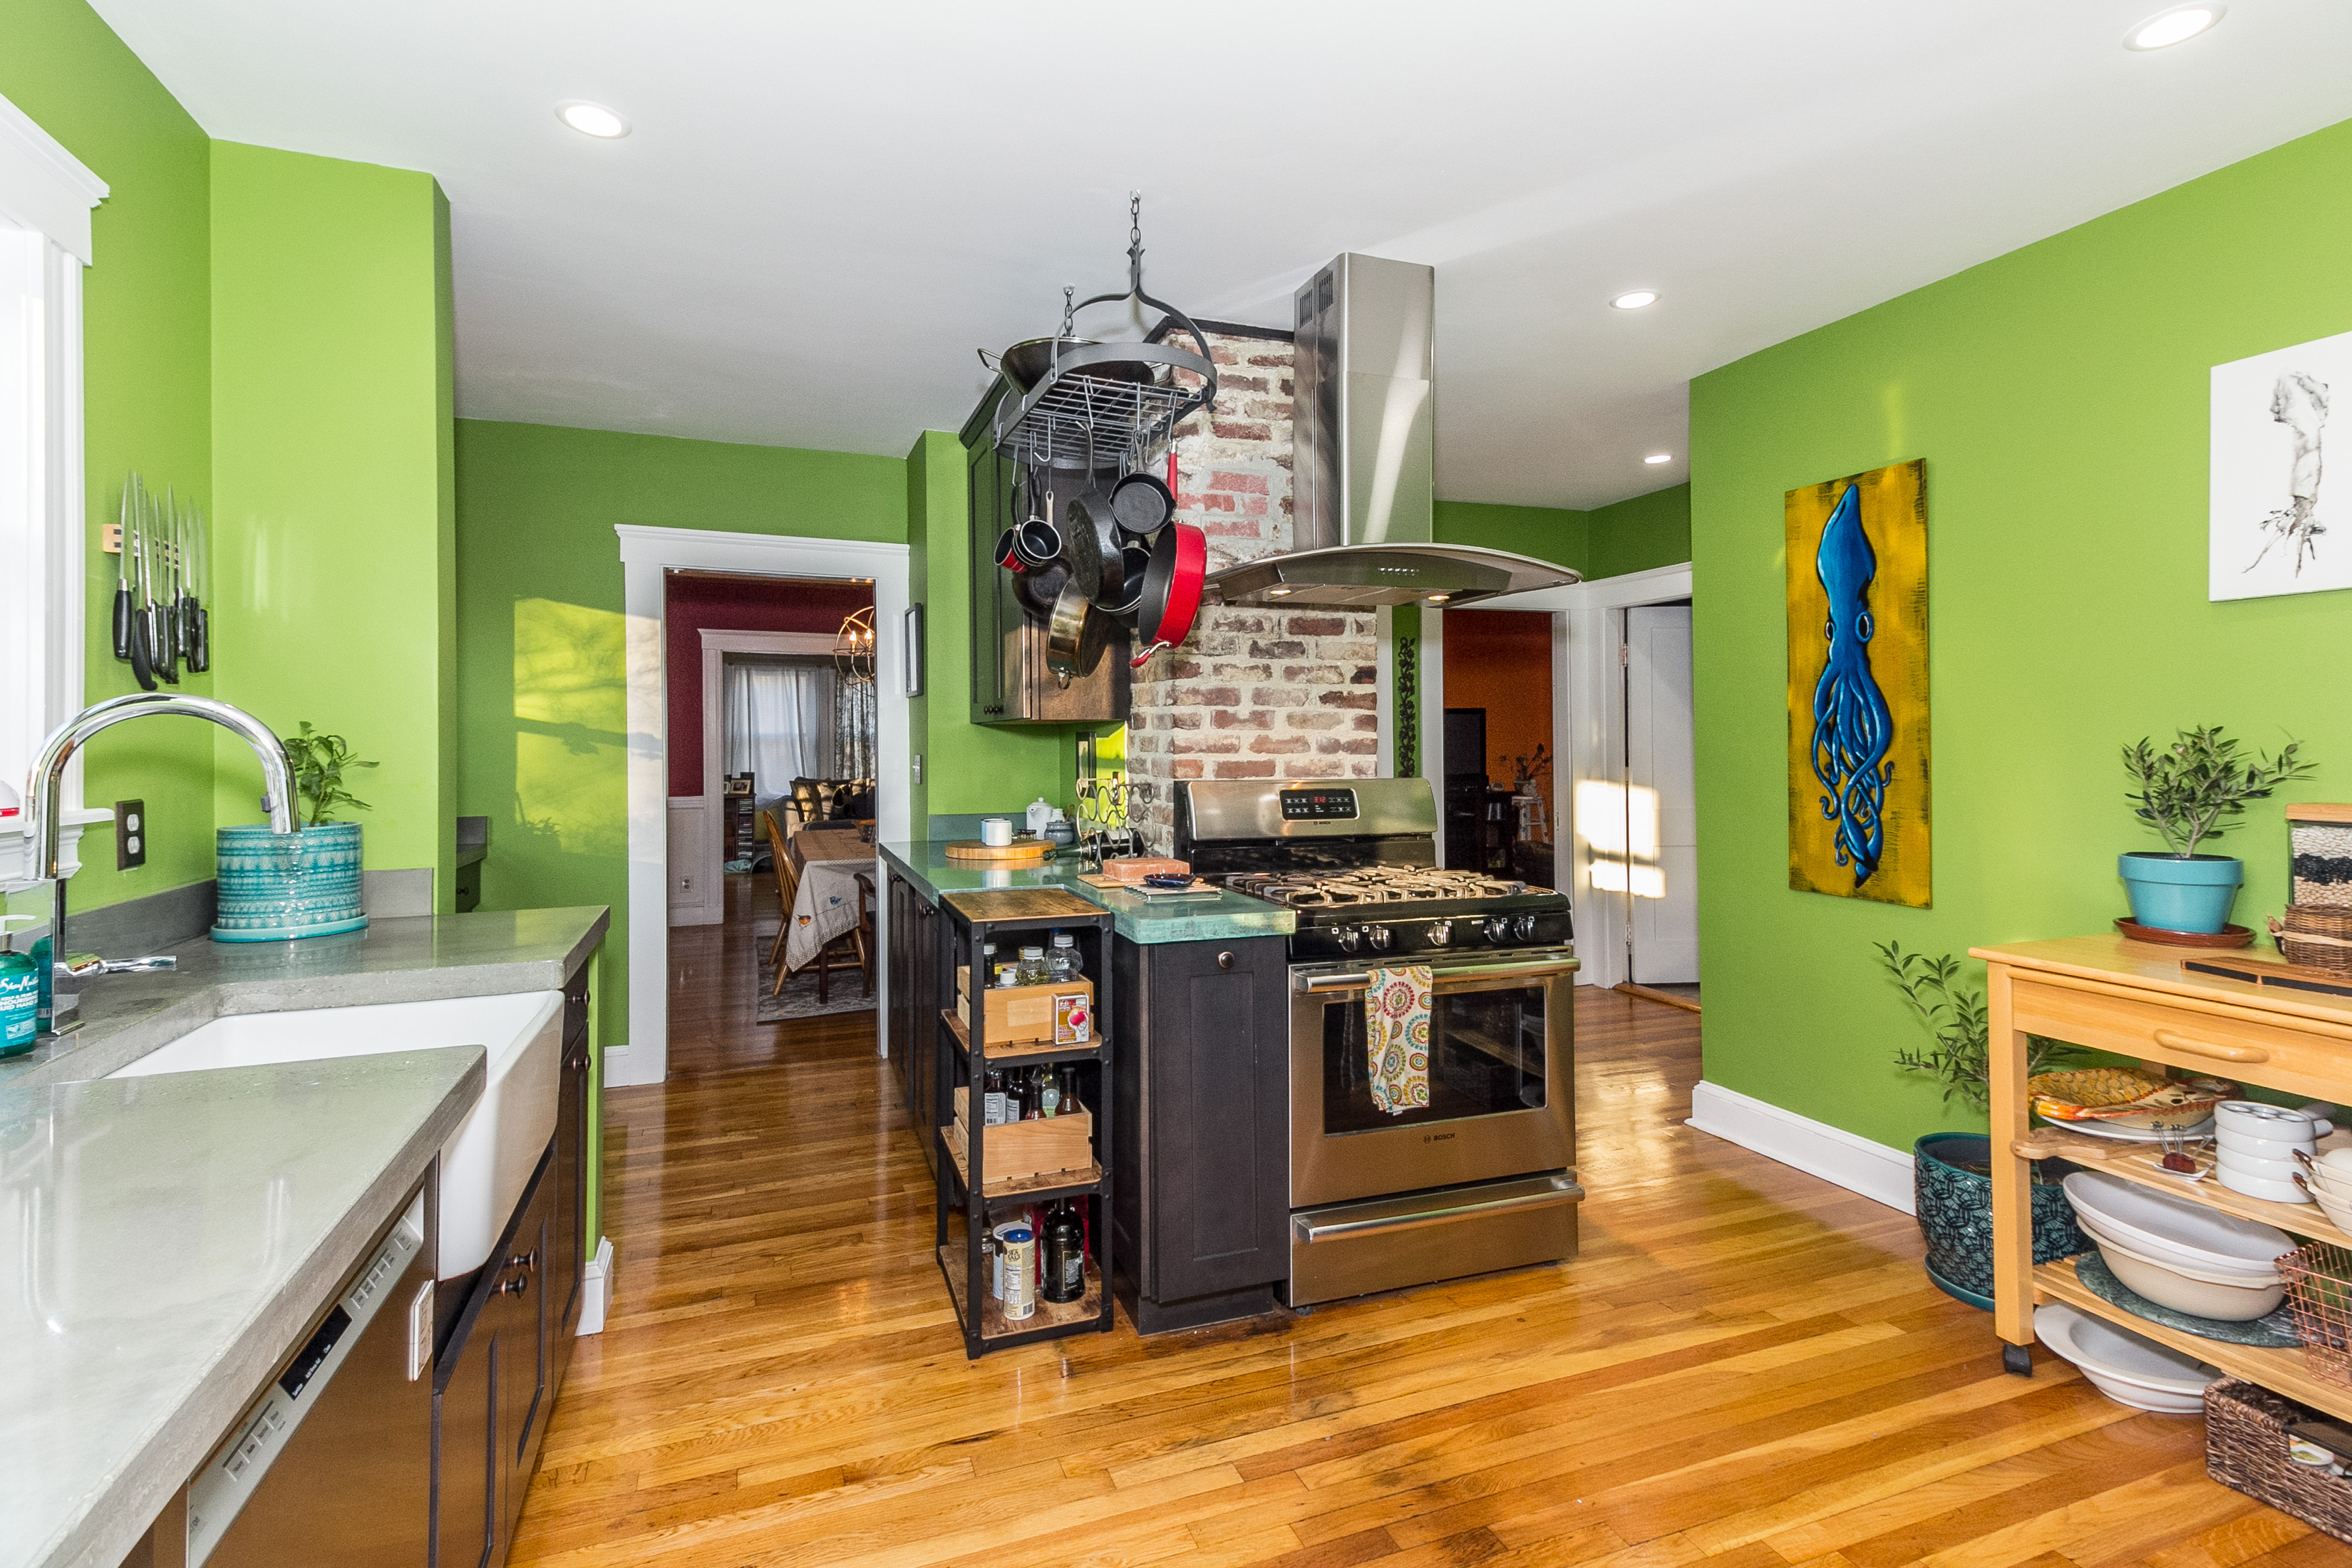 Minot St Kitchen Remodel - Boston MA - Bay State Refinishing & Remodeling